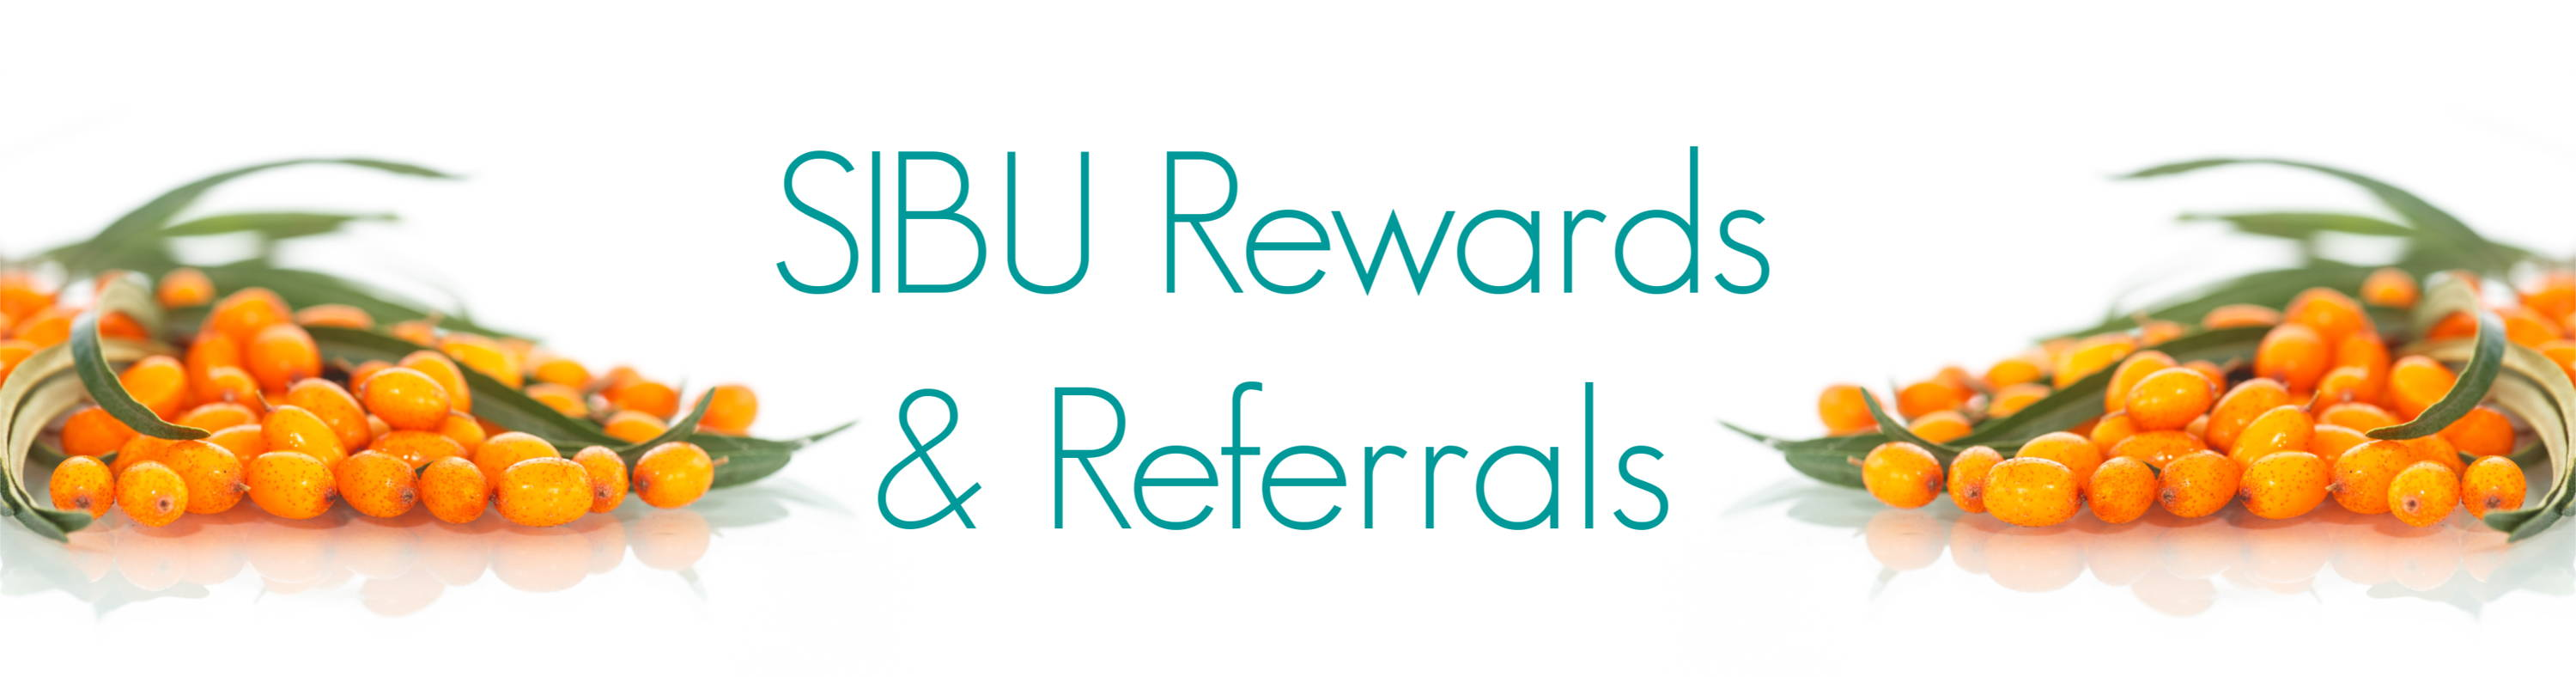 Sibu Rewards and Referrals